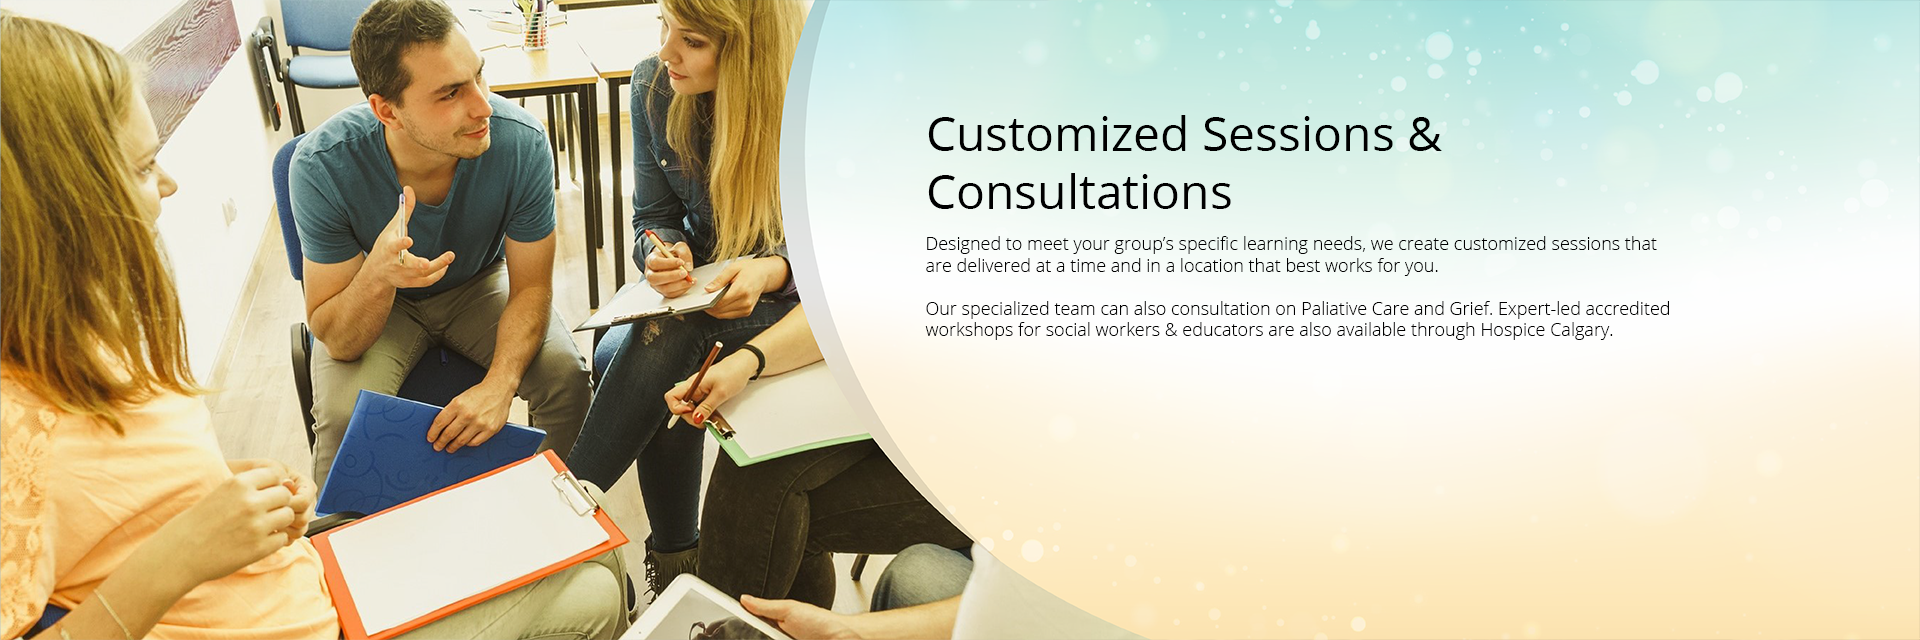 Customized Sessions & Consultations